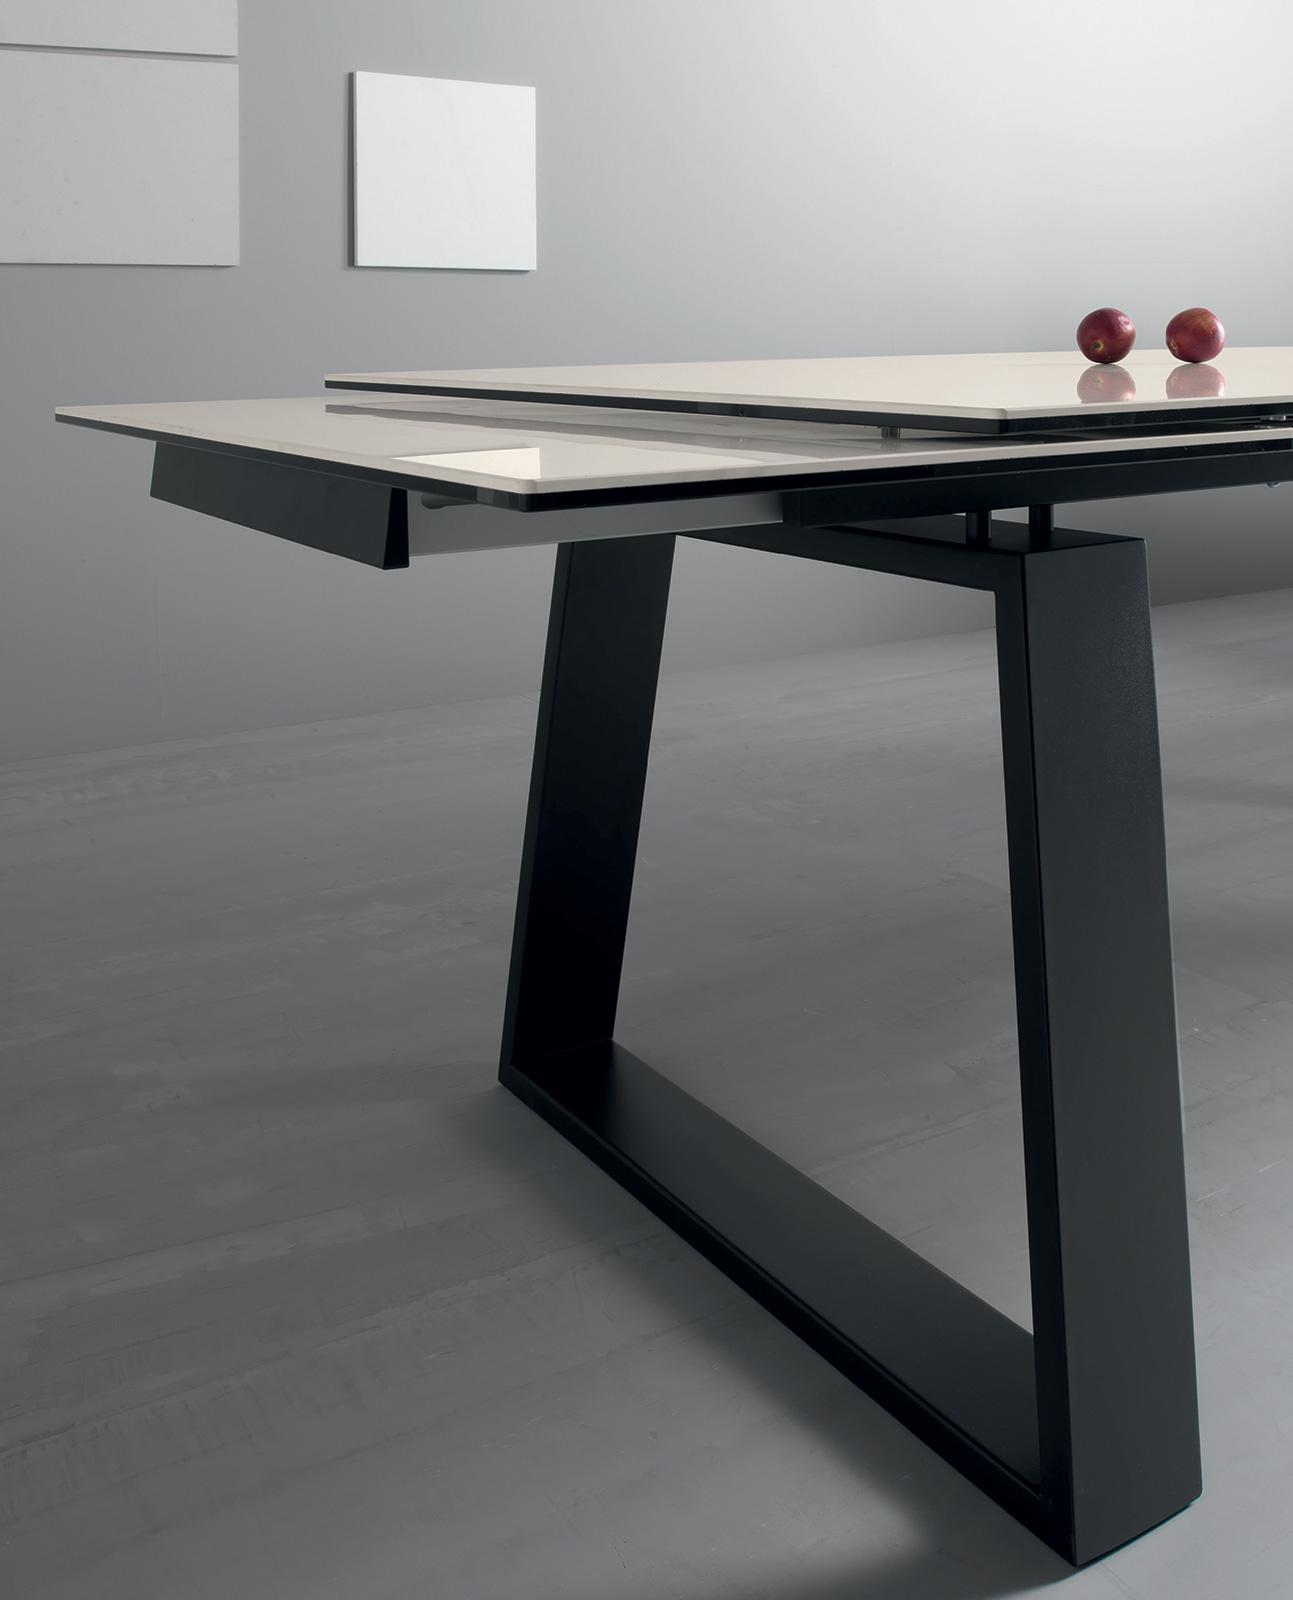 Connu Table en Céramique Extensible | Vente en Ligne - Italy Dream Design IF48